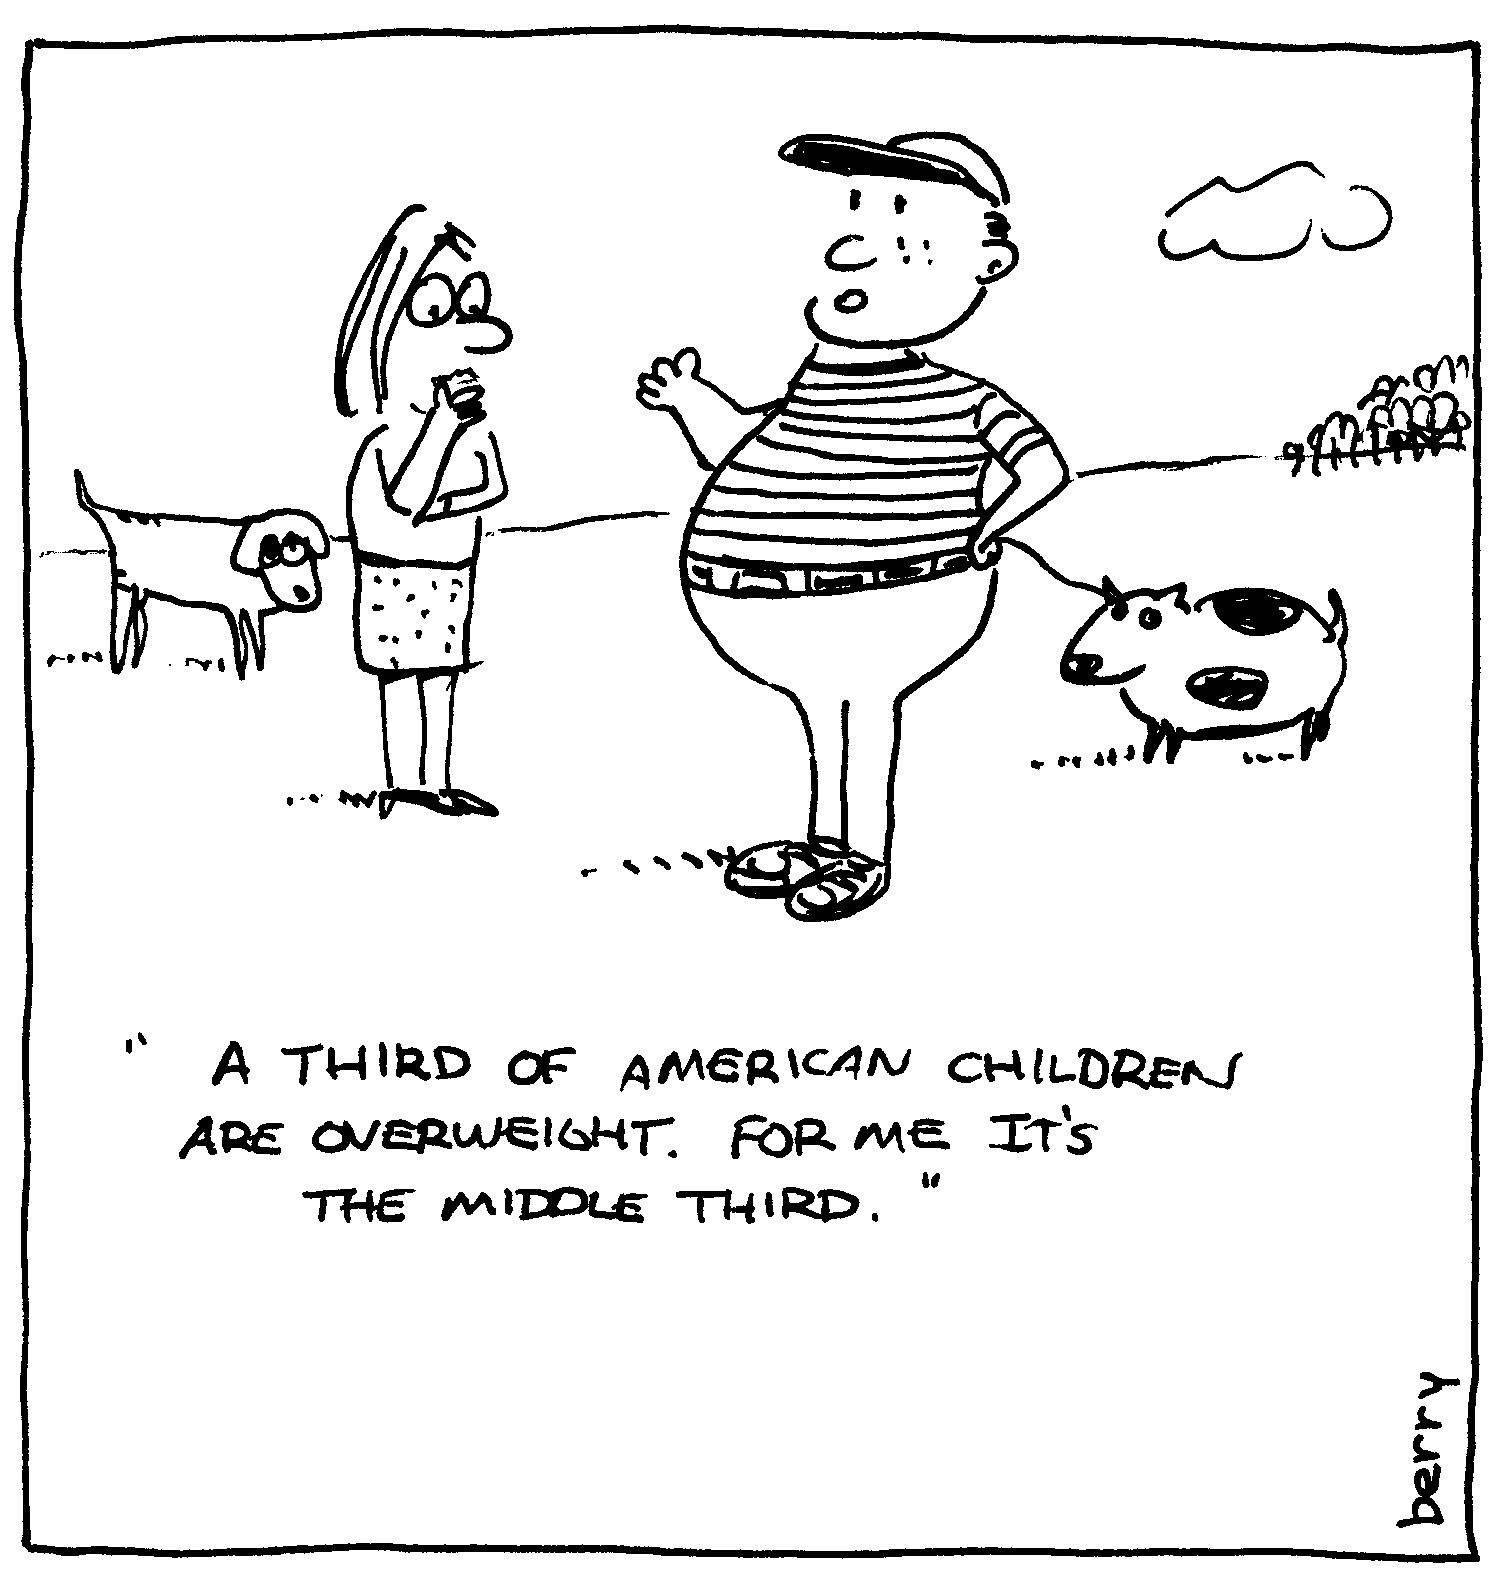 childhood obesity and cartoons The restrictions on ads extend to saturday-morning cartoons on abc stations owned by taking steps to combat childhood obesity allows disney the opportunity to polish its brand as one families can trust something that drives sales of everything from pixar dvds to baby clothes.